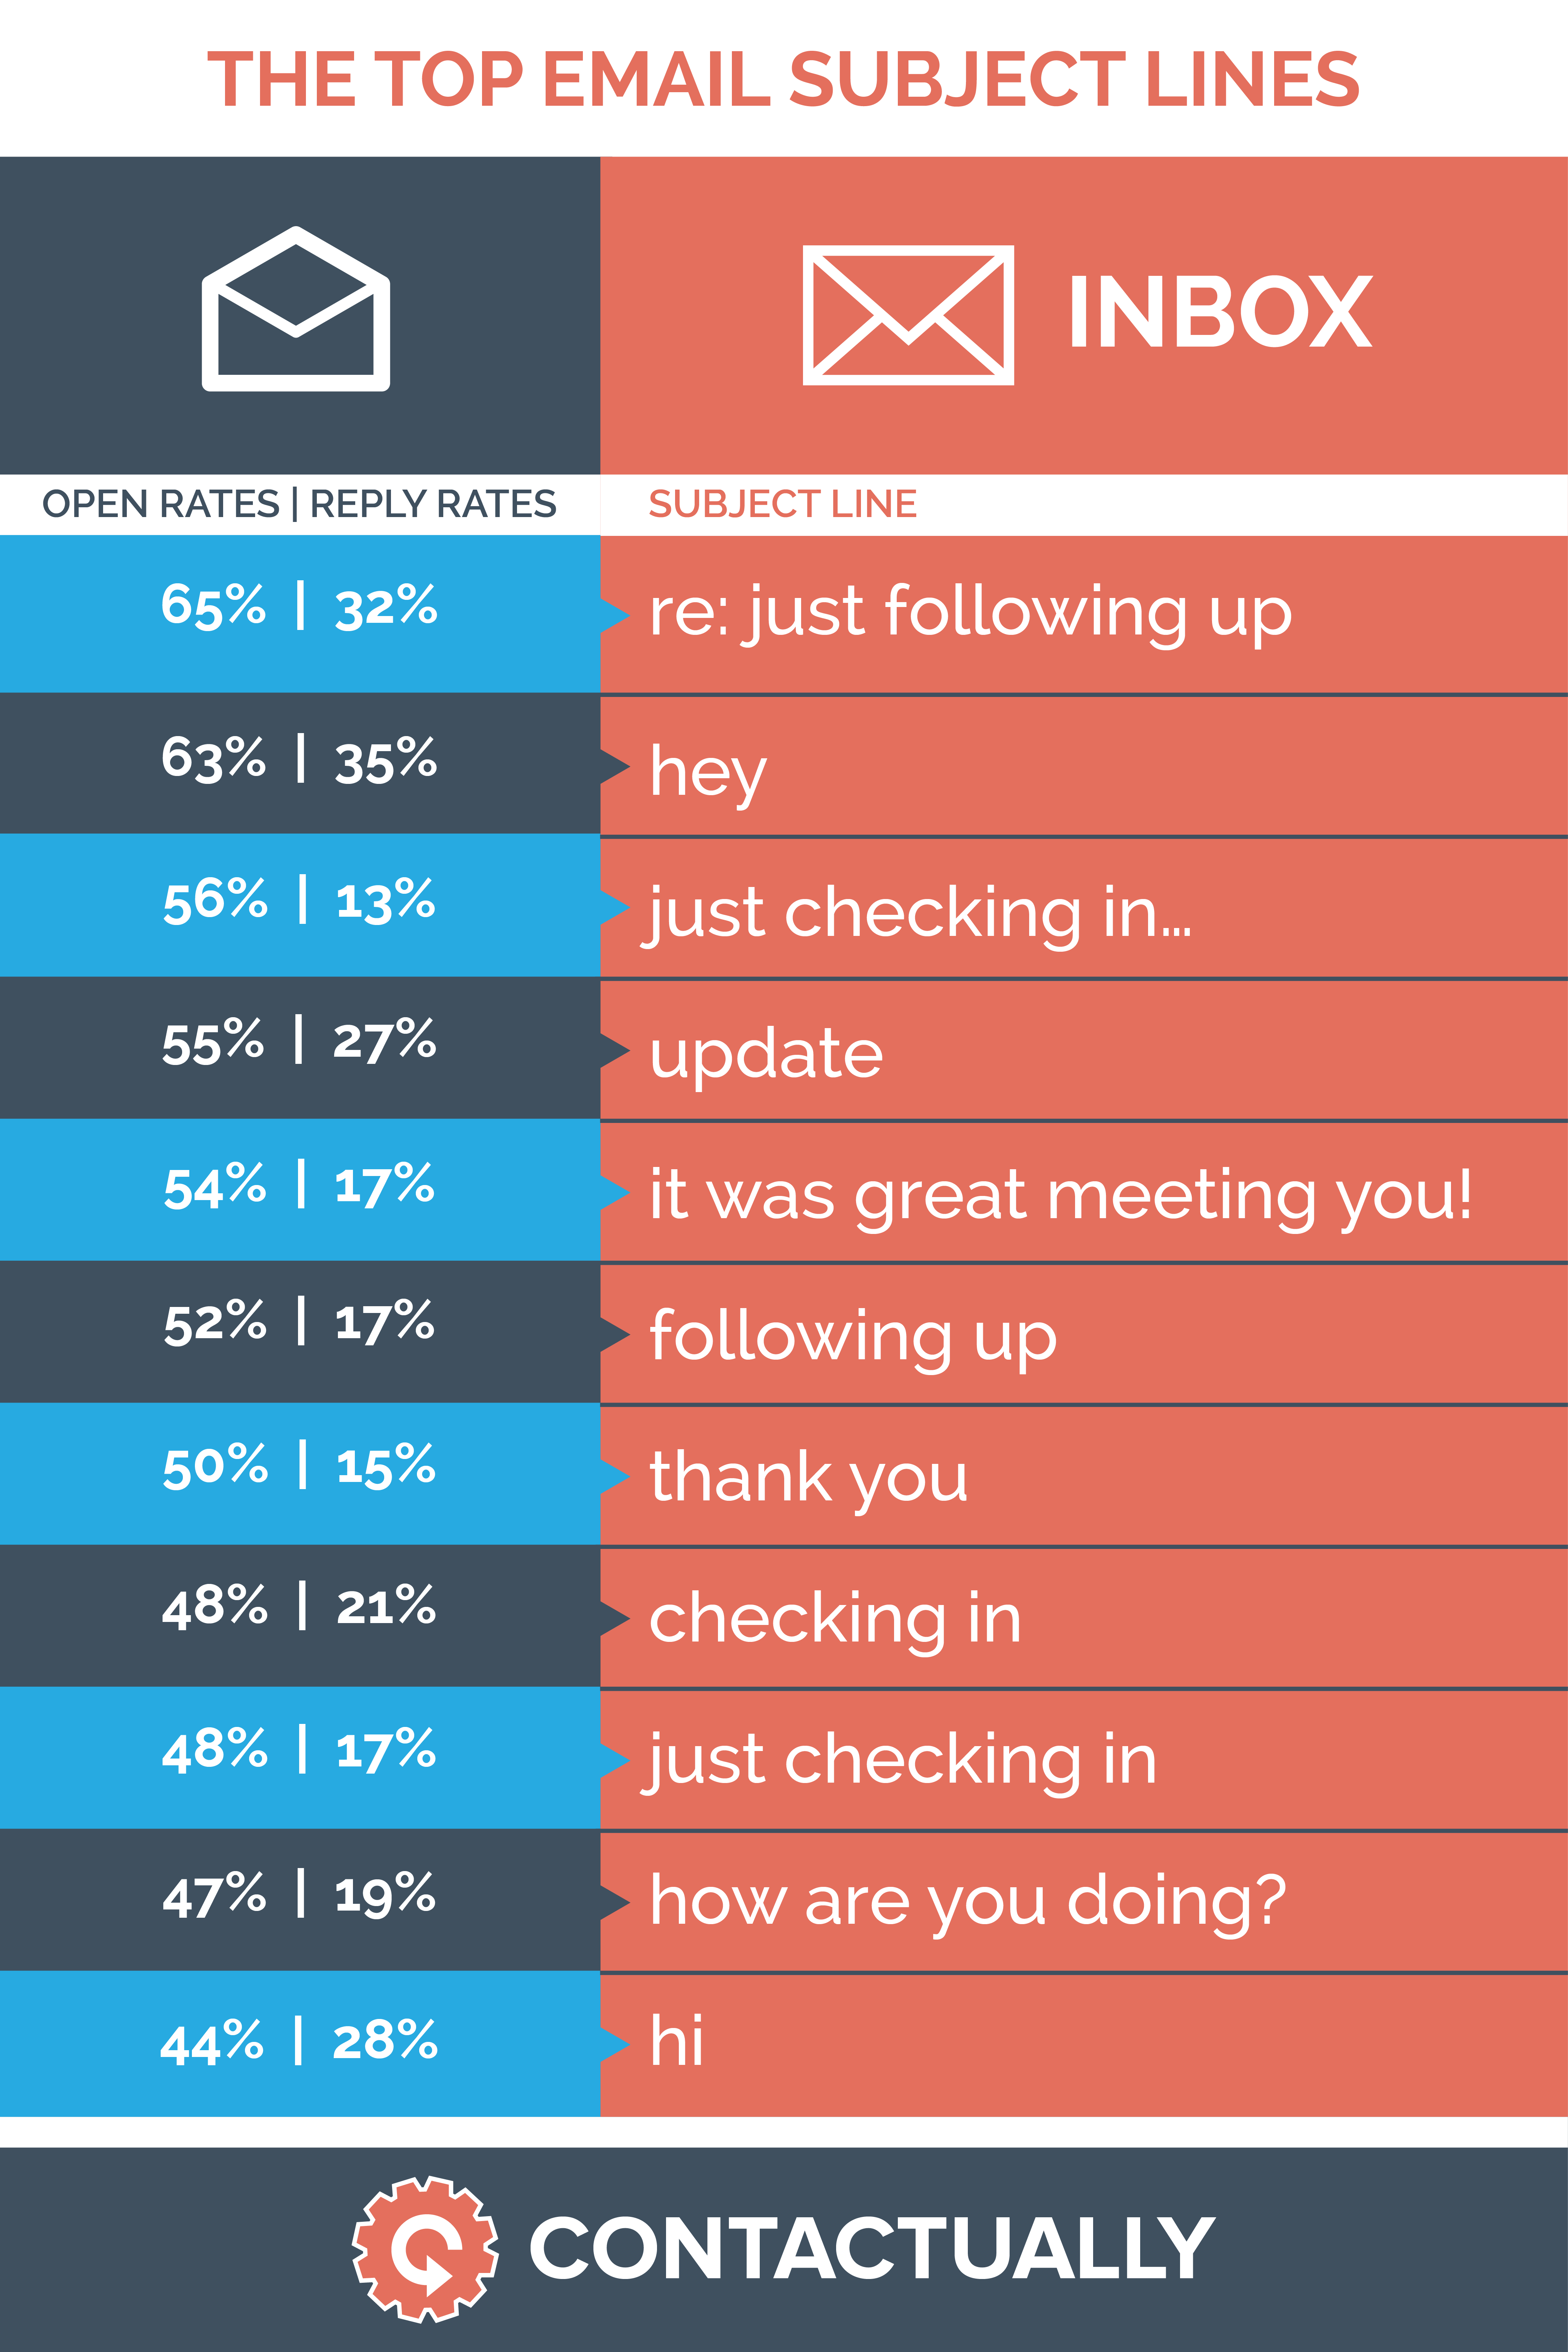 Pay Attention to Me: The Best Subject Lines [Infographic]